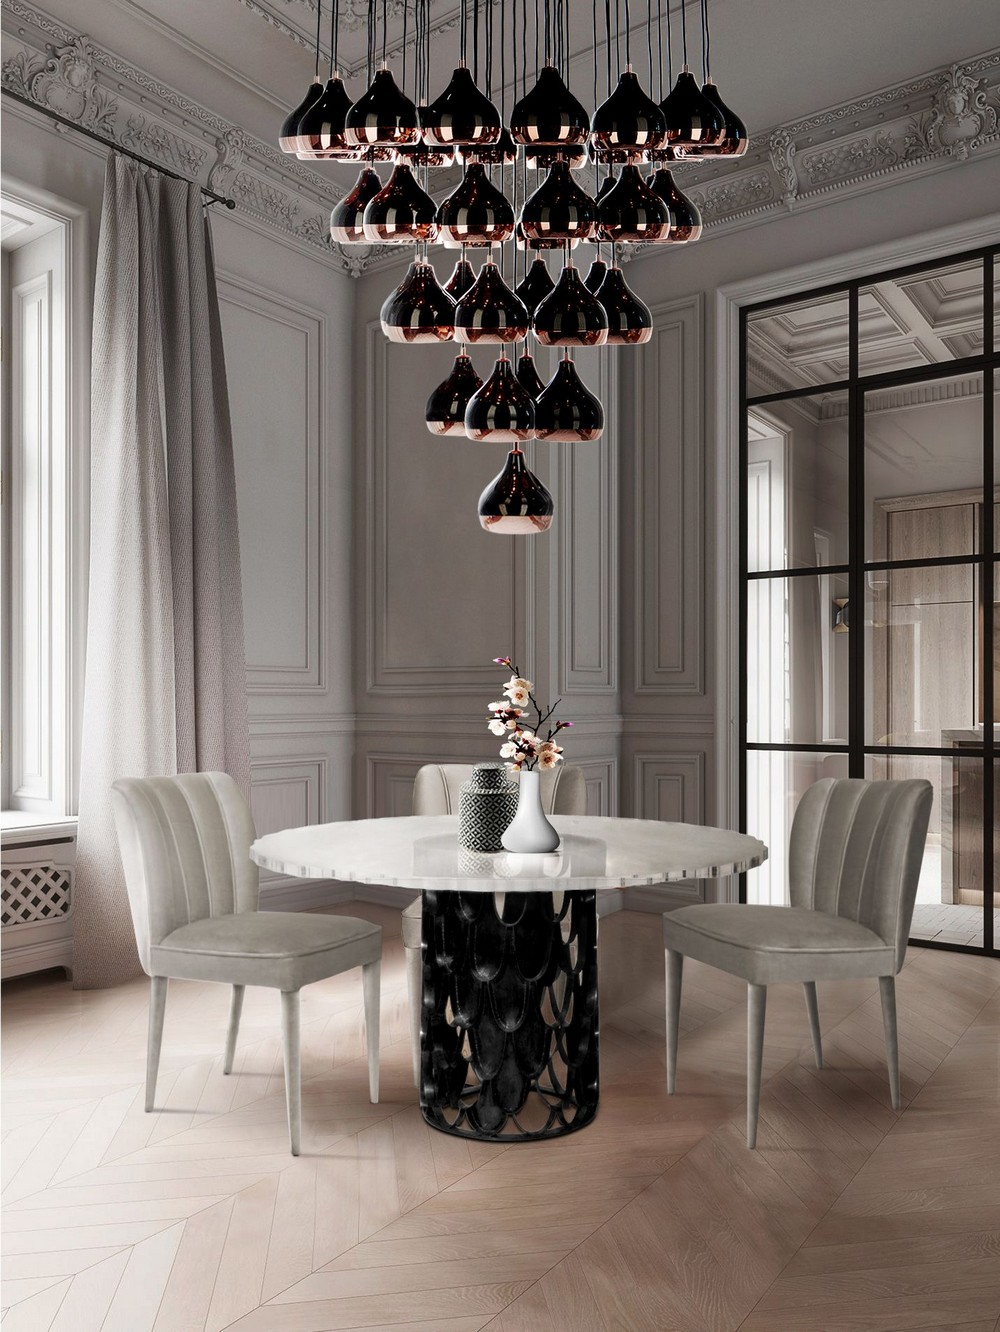 The Top 6 Trending Dining Room Ideas dining room ideas The Top 6 Trending Dining Room Ideas a tocuh of black